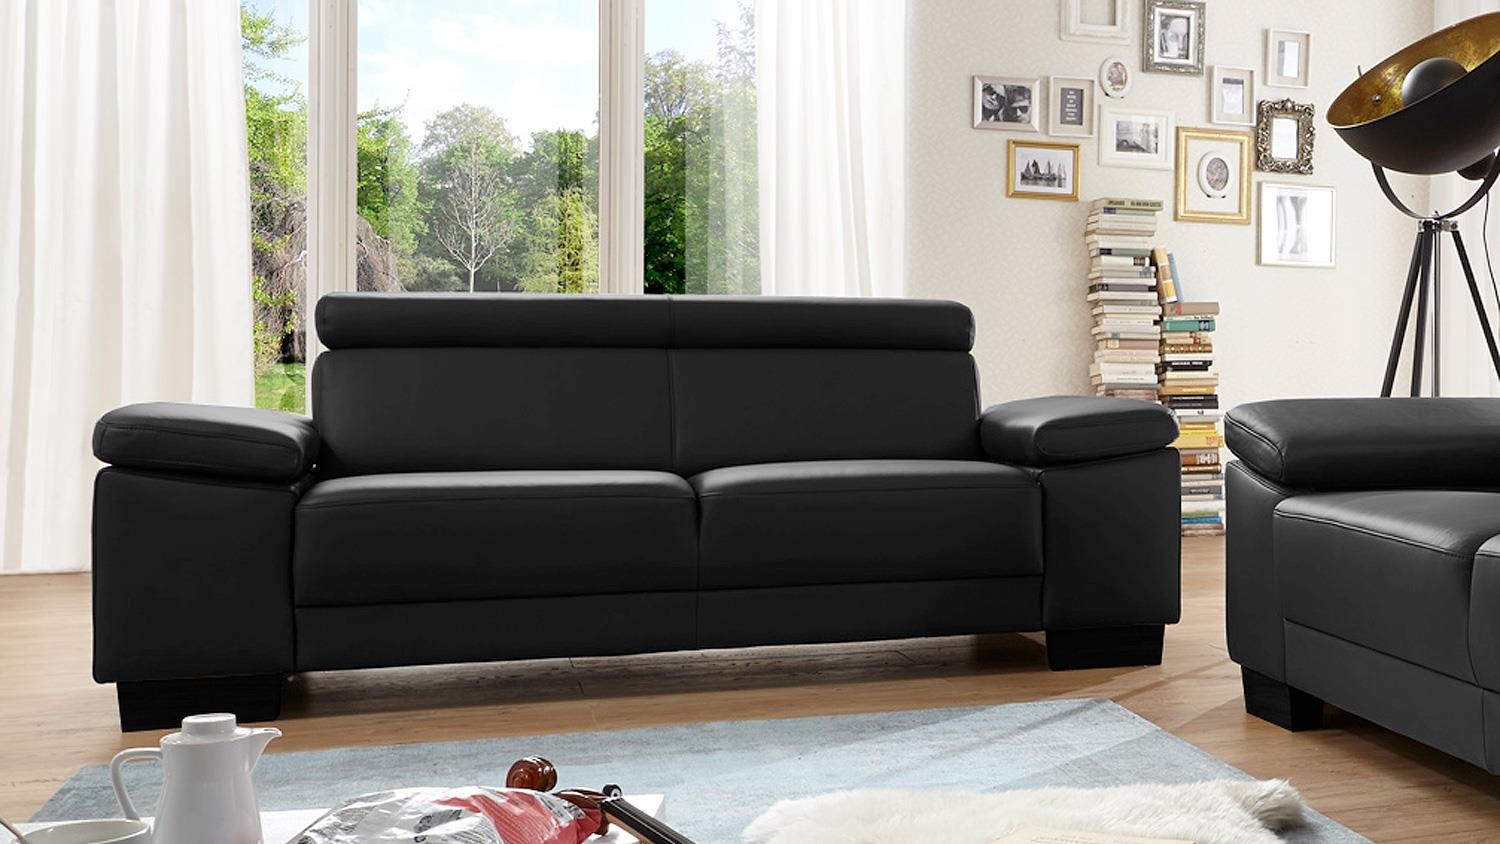 Sofa santiago garnitur in leder schwarz mit funktion for Sofa garnitur